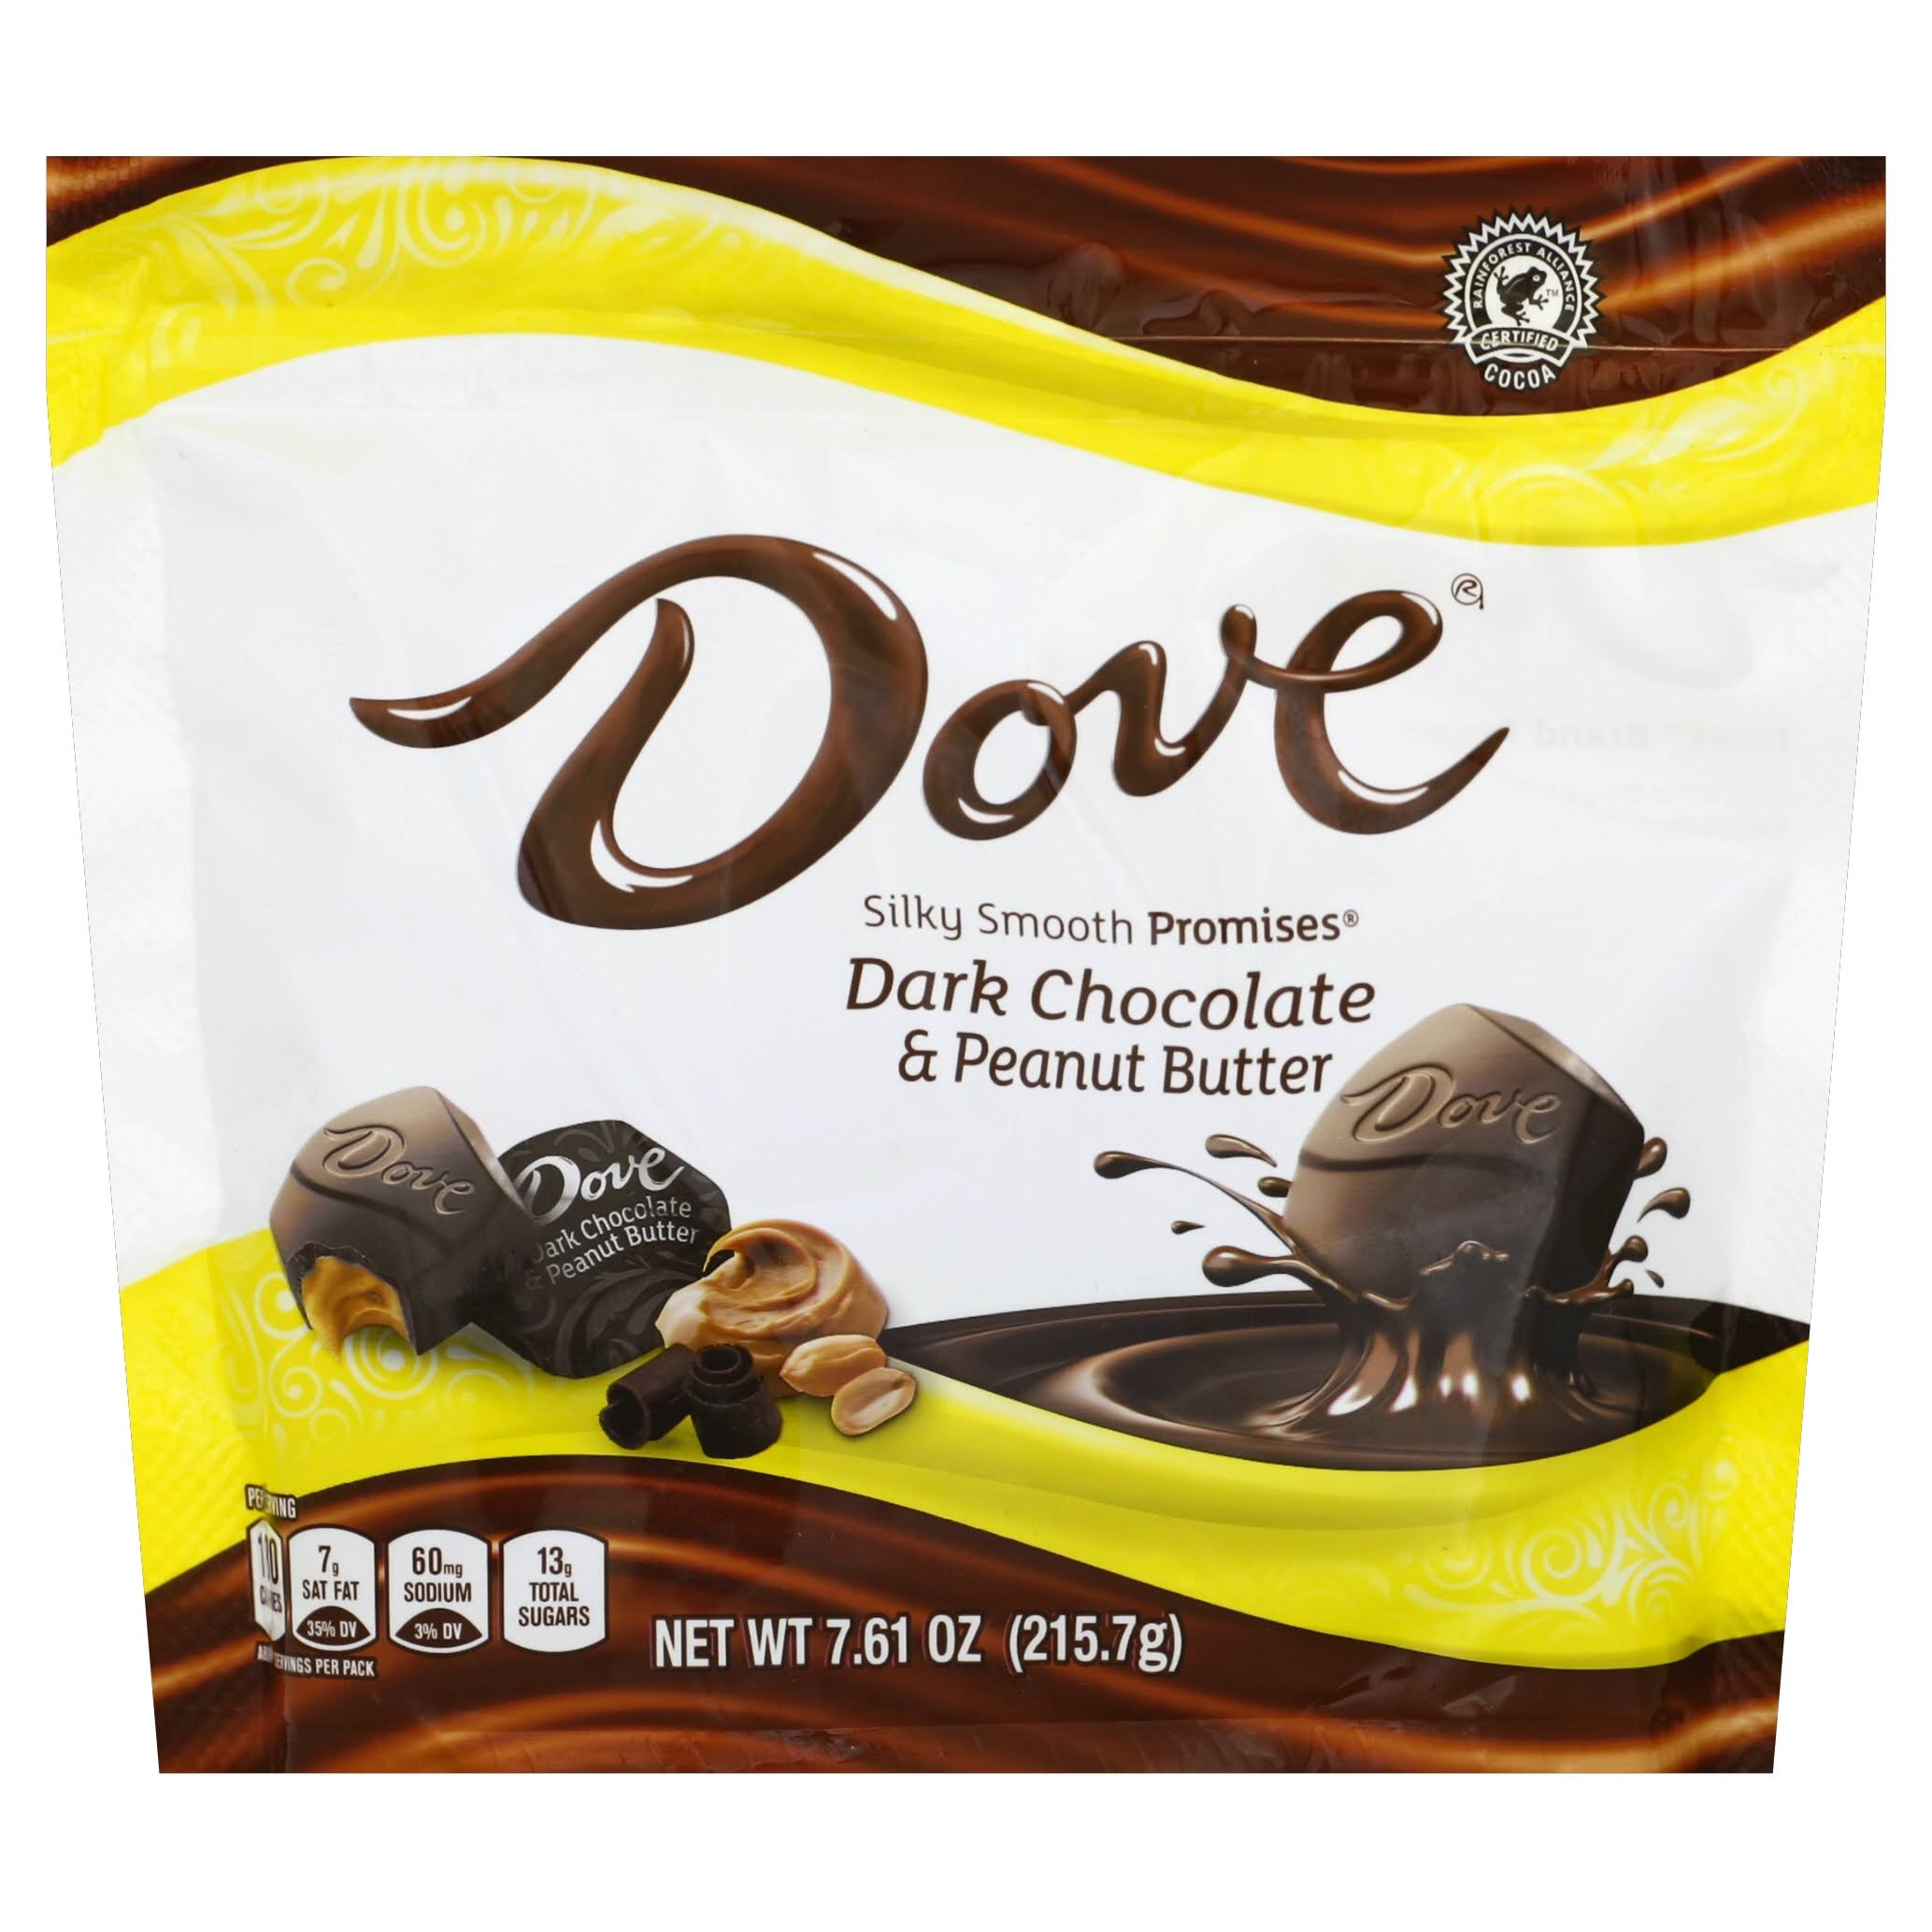 Dove Dark Chocolate & Peanut Butter Silky Smooth Promises - 7.61oz, 4pk